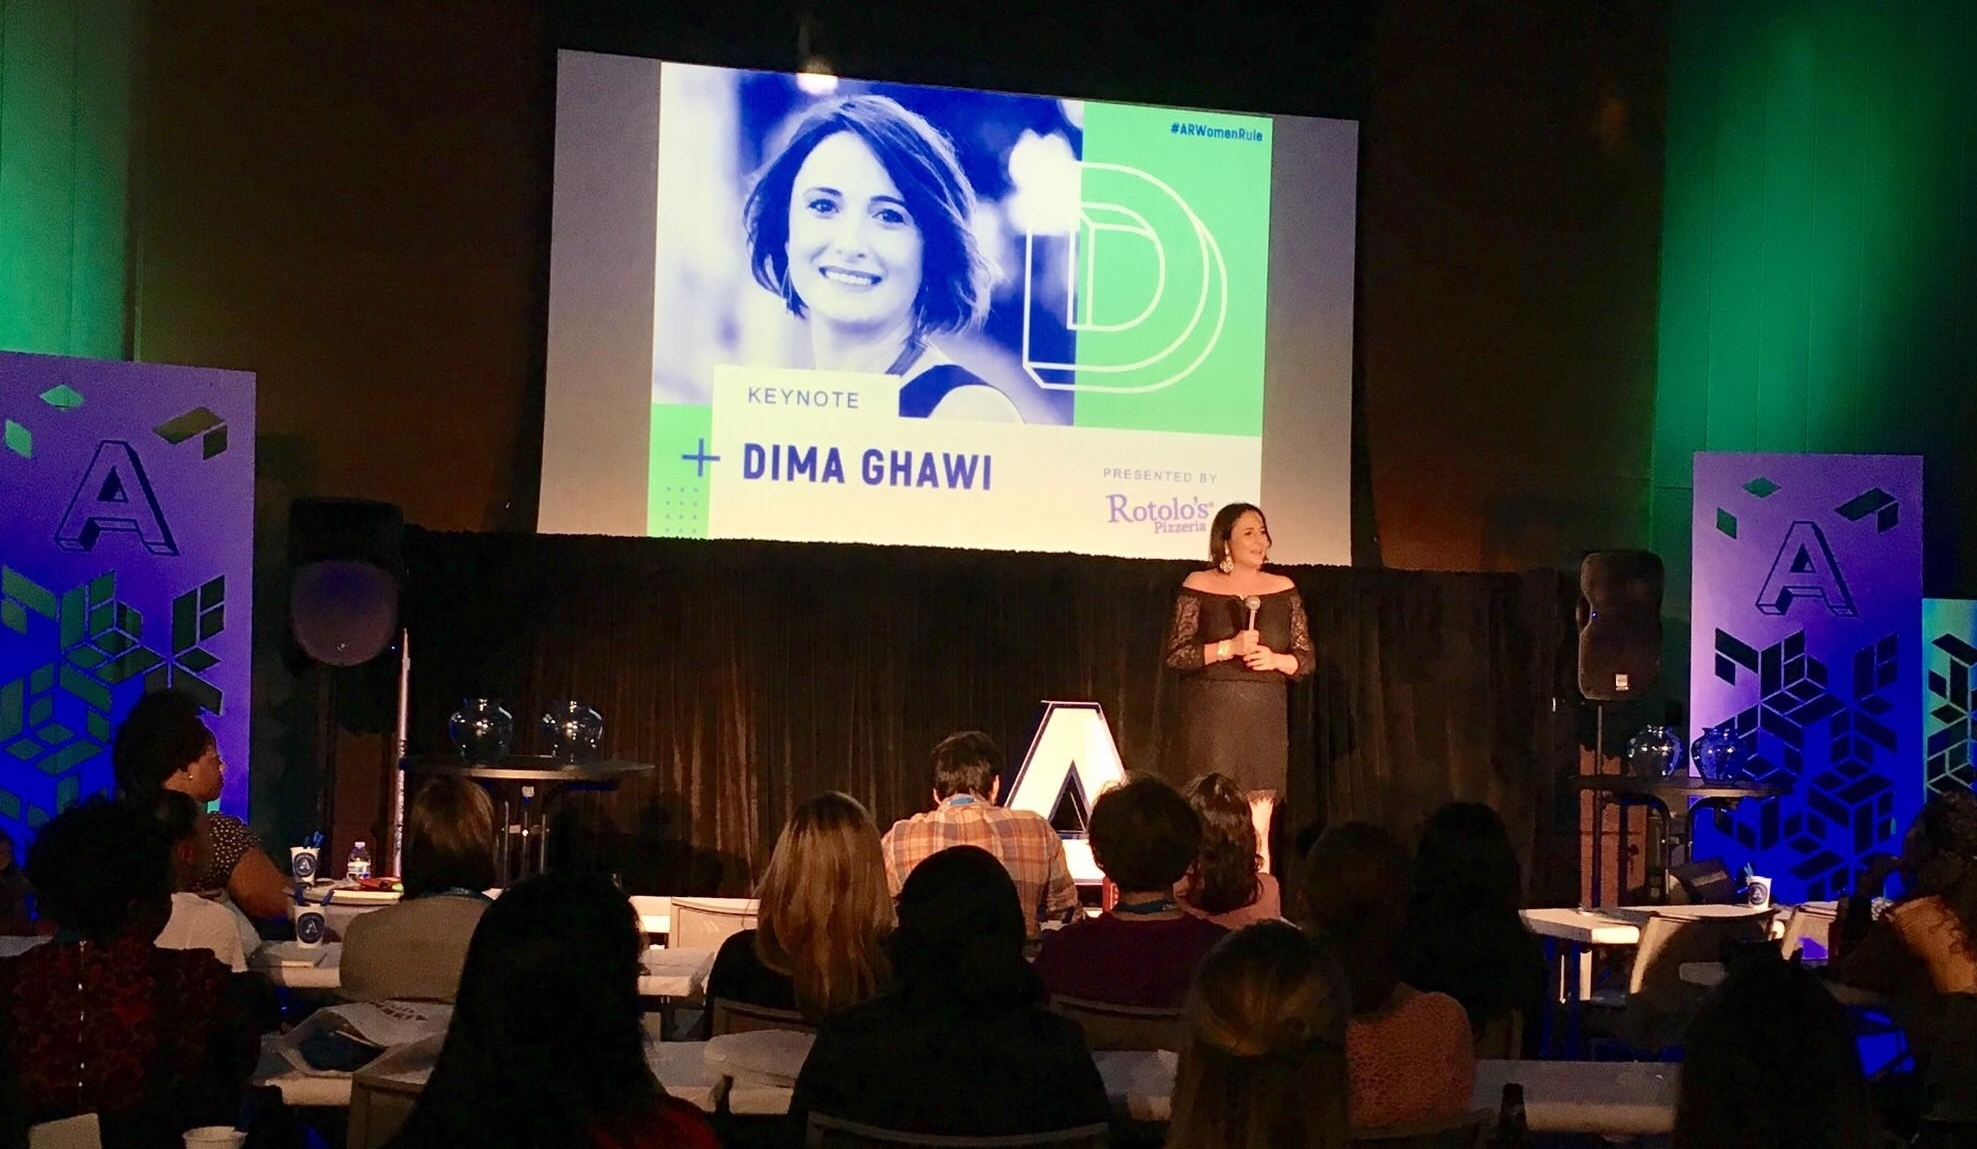 Dima Ghawi Keynote Speaker Women Leadership.jpg